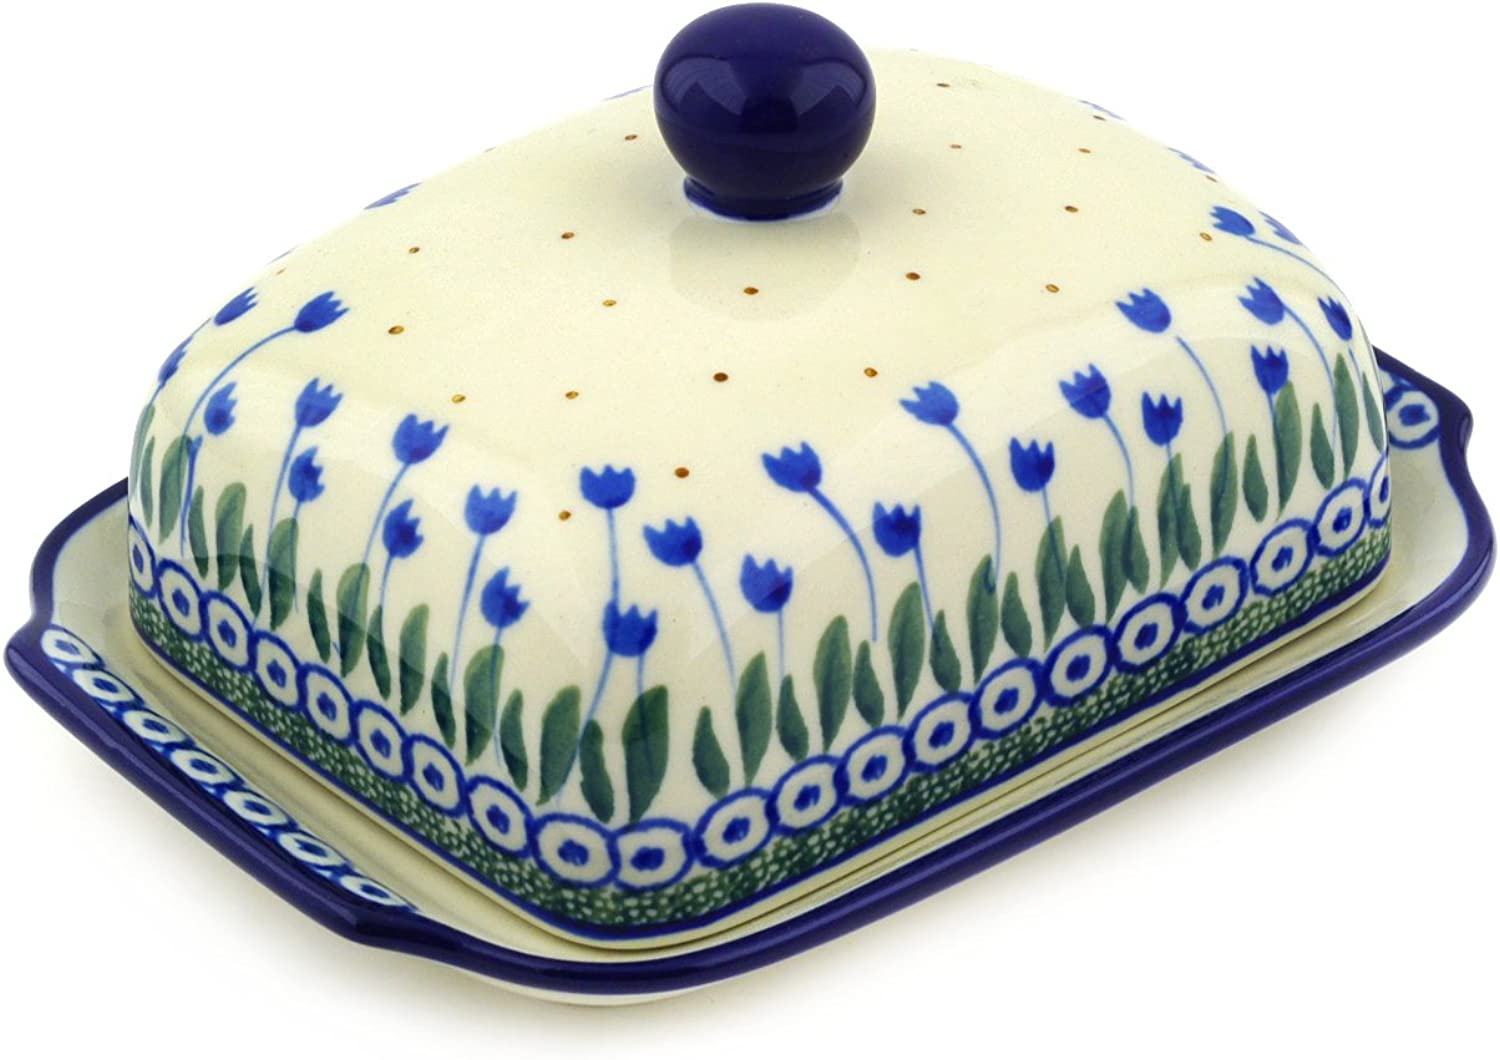 Polish Pottery 6?-inch Butter Dish made by Ceramika Artystyczna (Water Tulip Theme) + Certificate of Authenticity